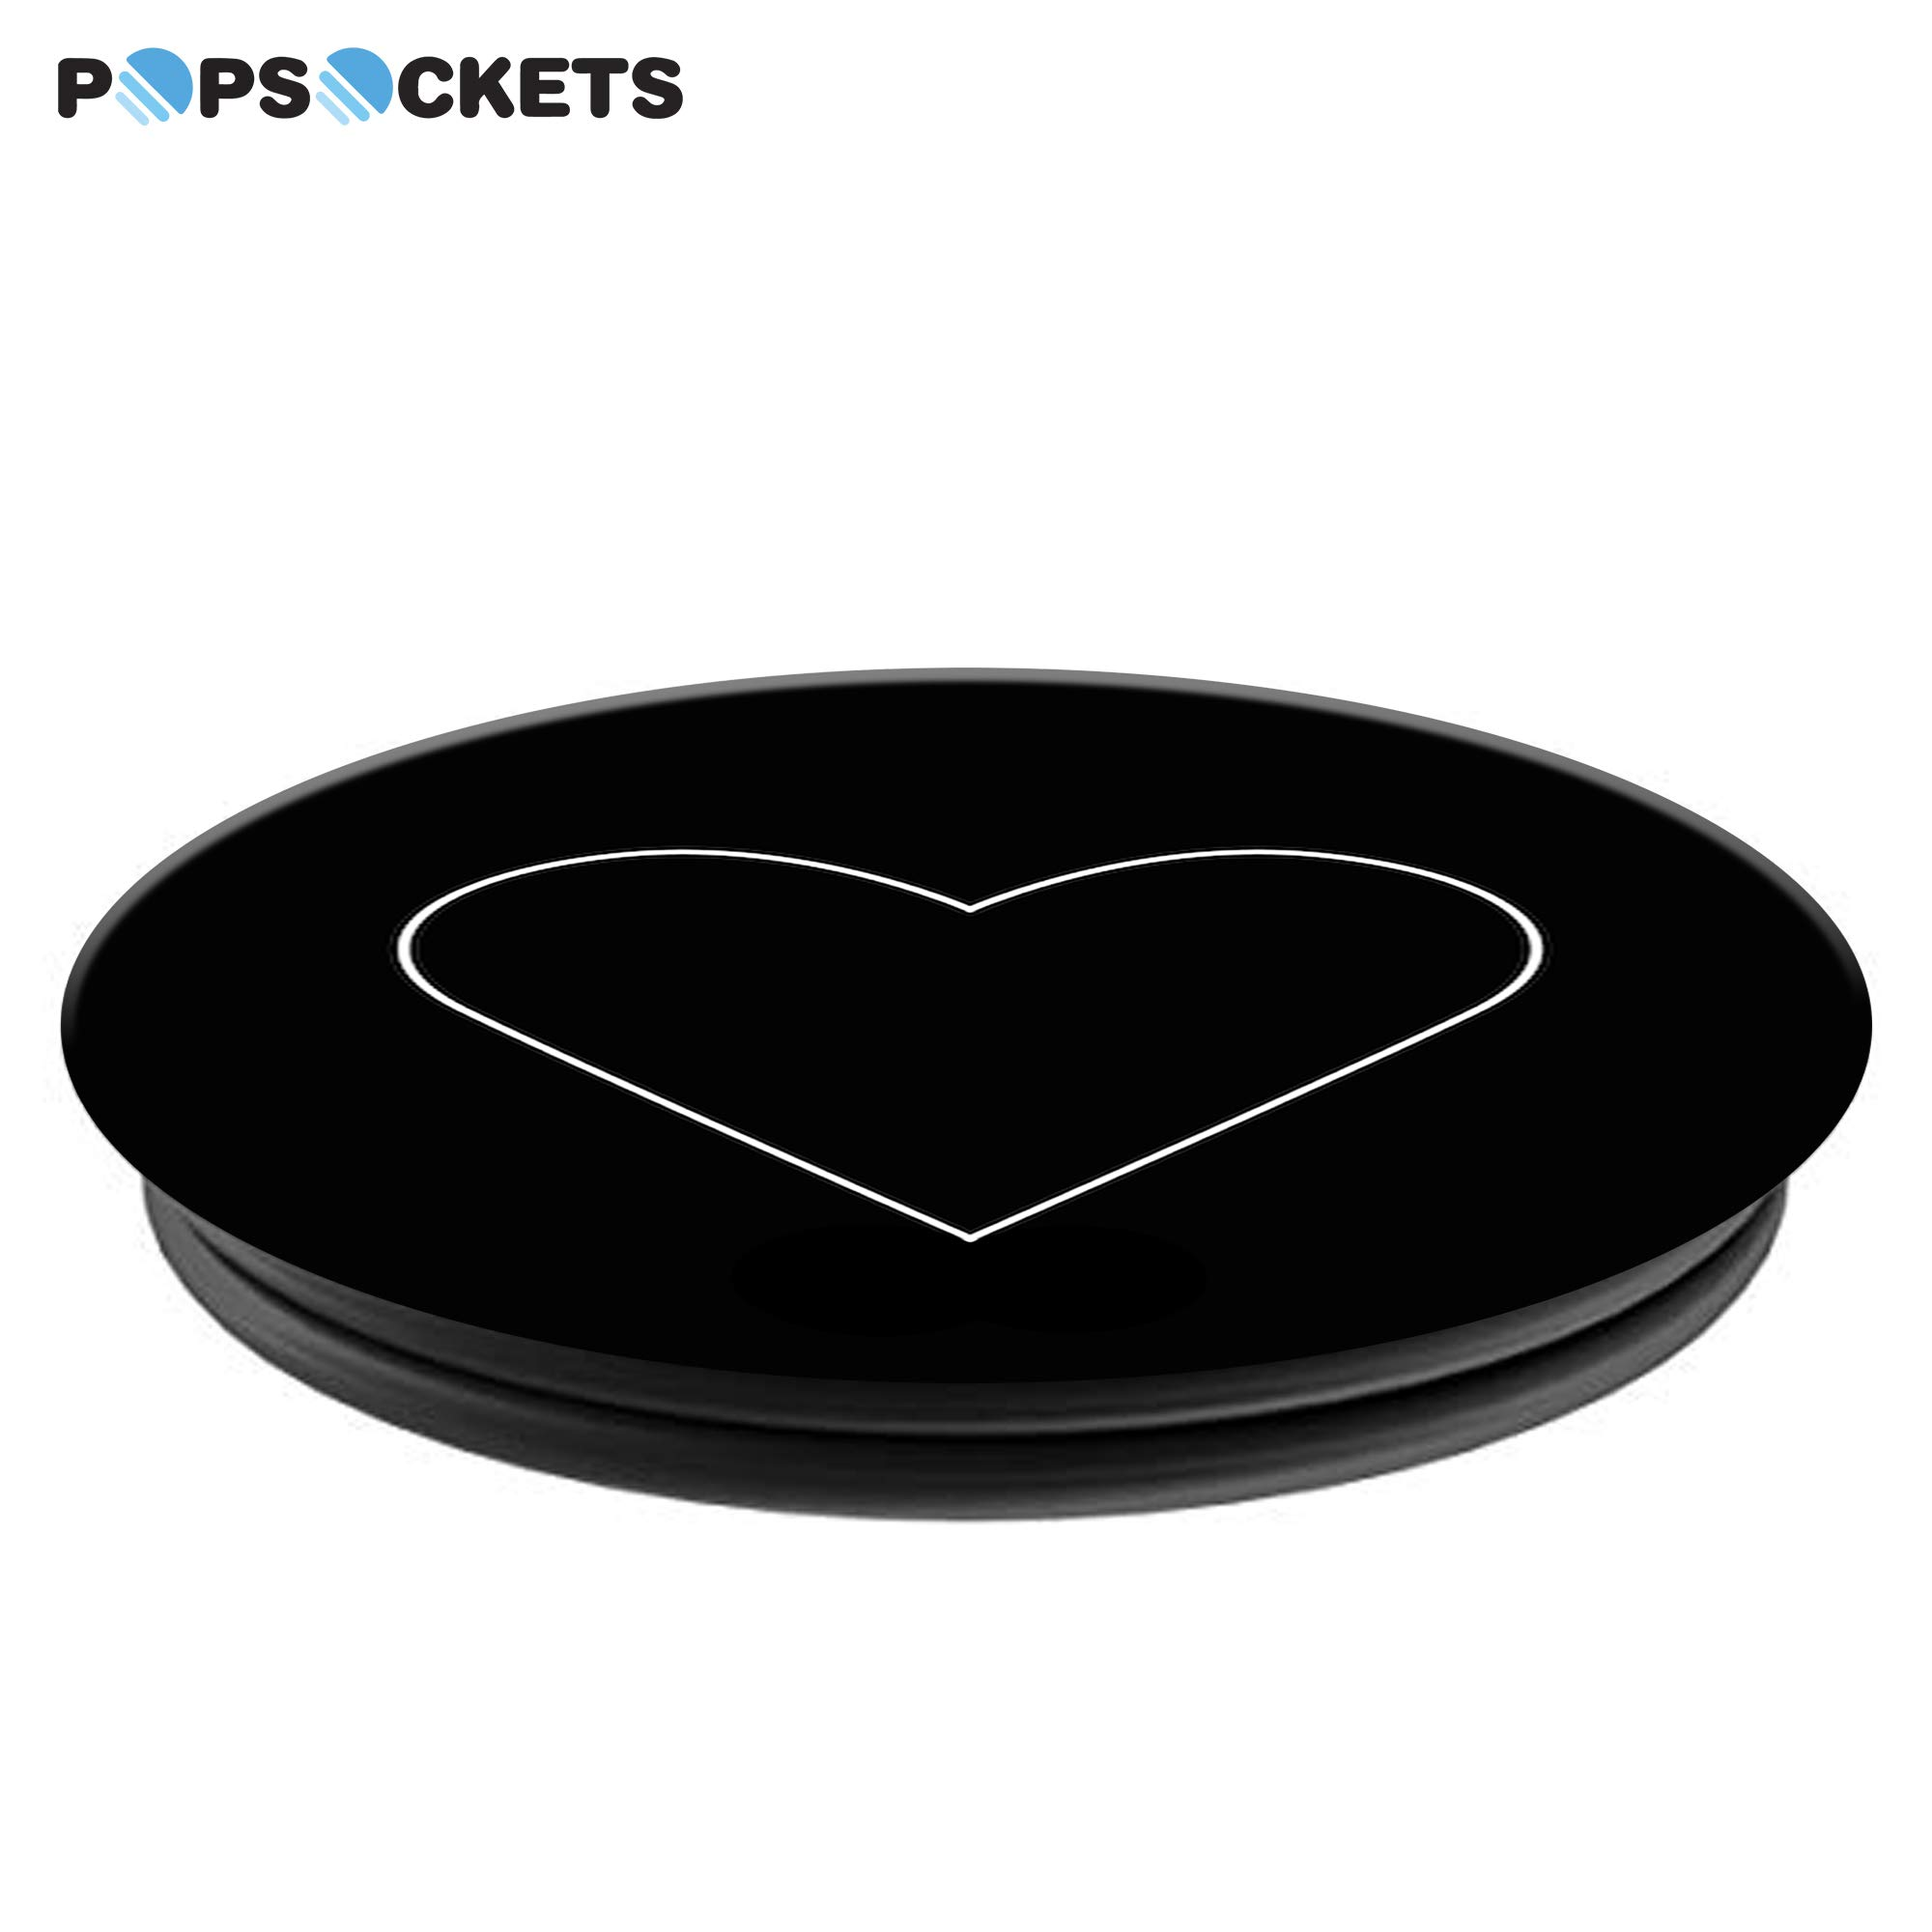 PopSockets: Collapsible Grip & Stand for Phones and Tablets - White Heart Black by PopSockets (Image #4)